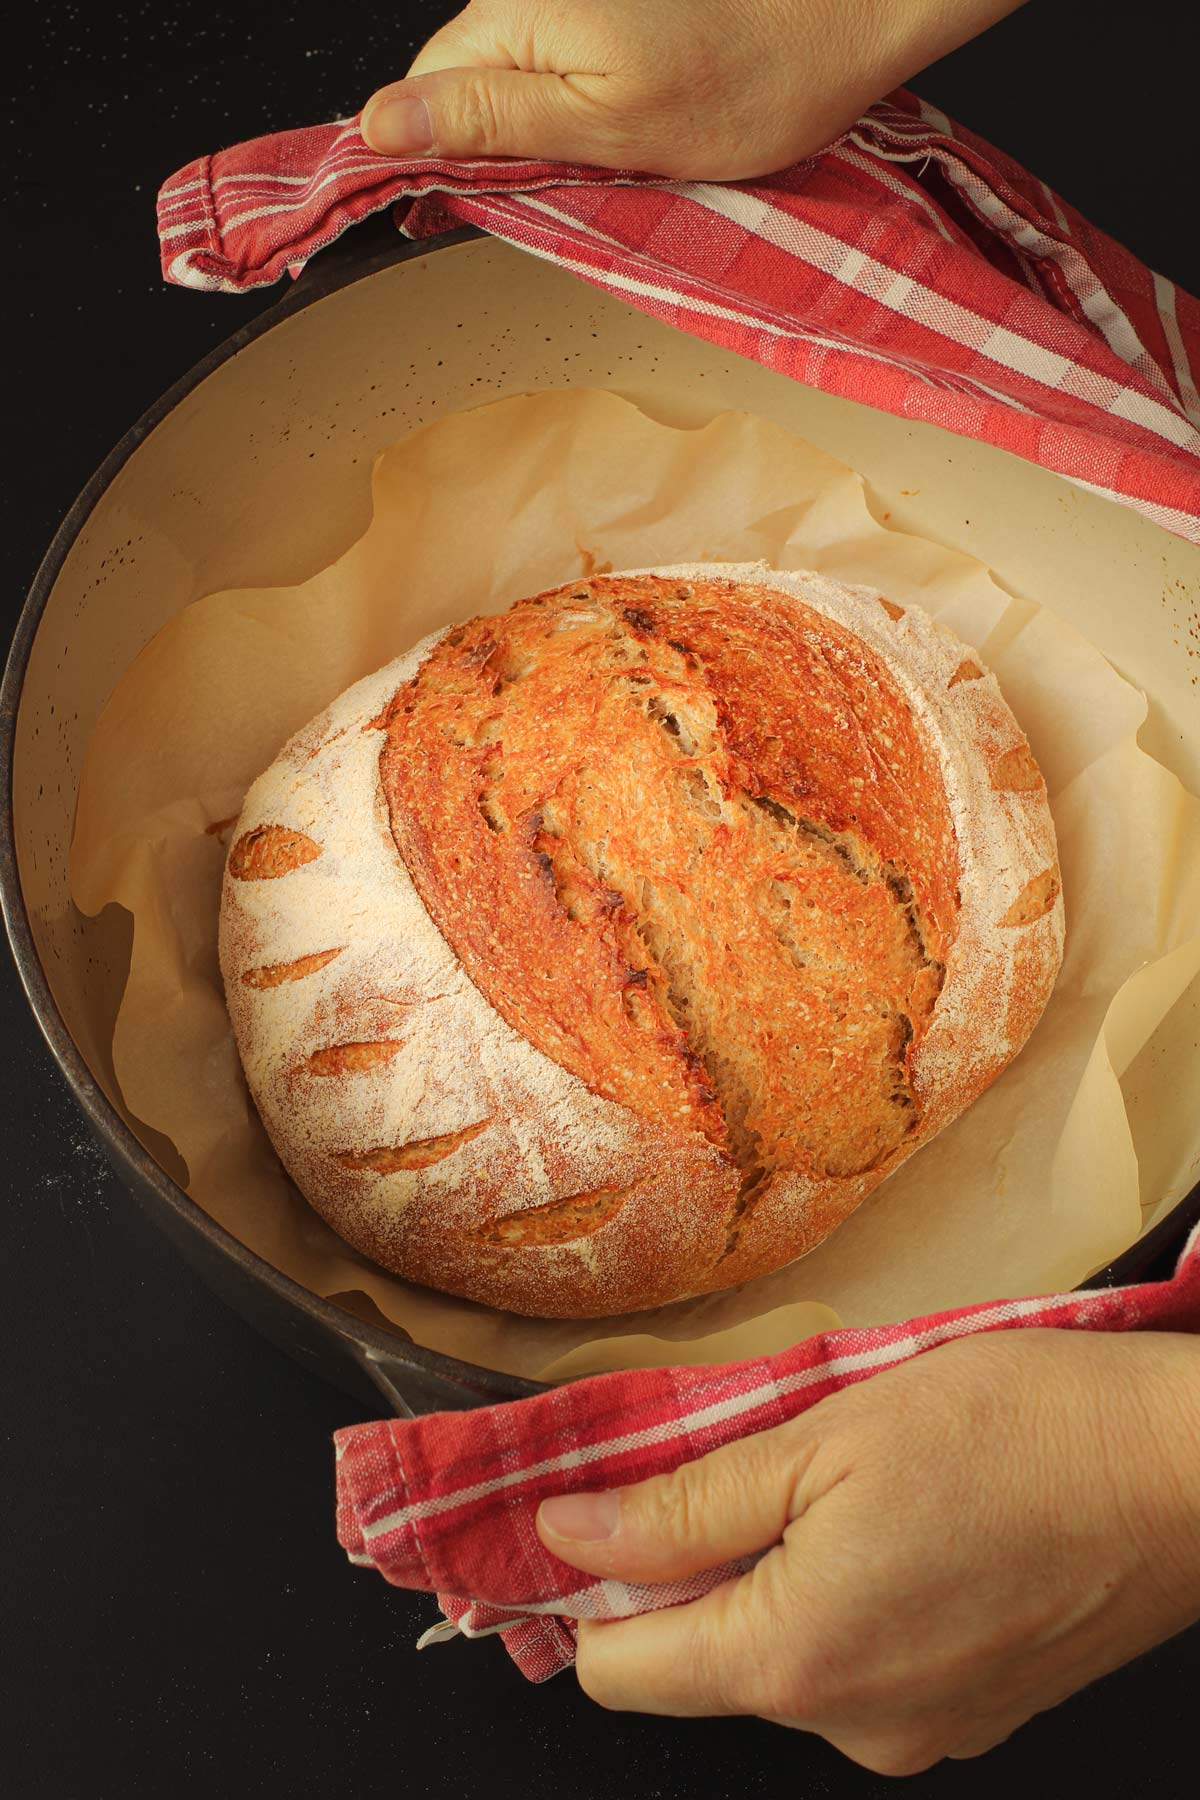 hands holding dutch oven with baked boule inside, using red cloth as hot pads.